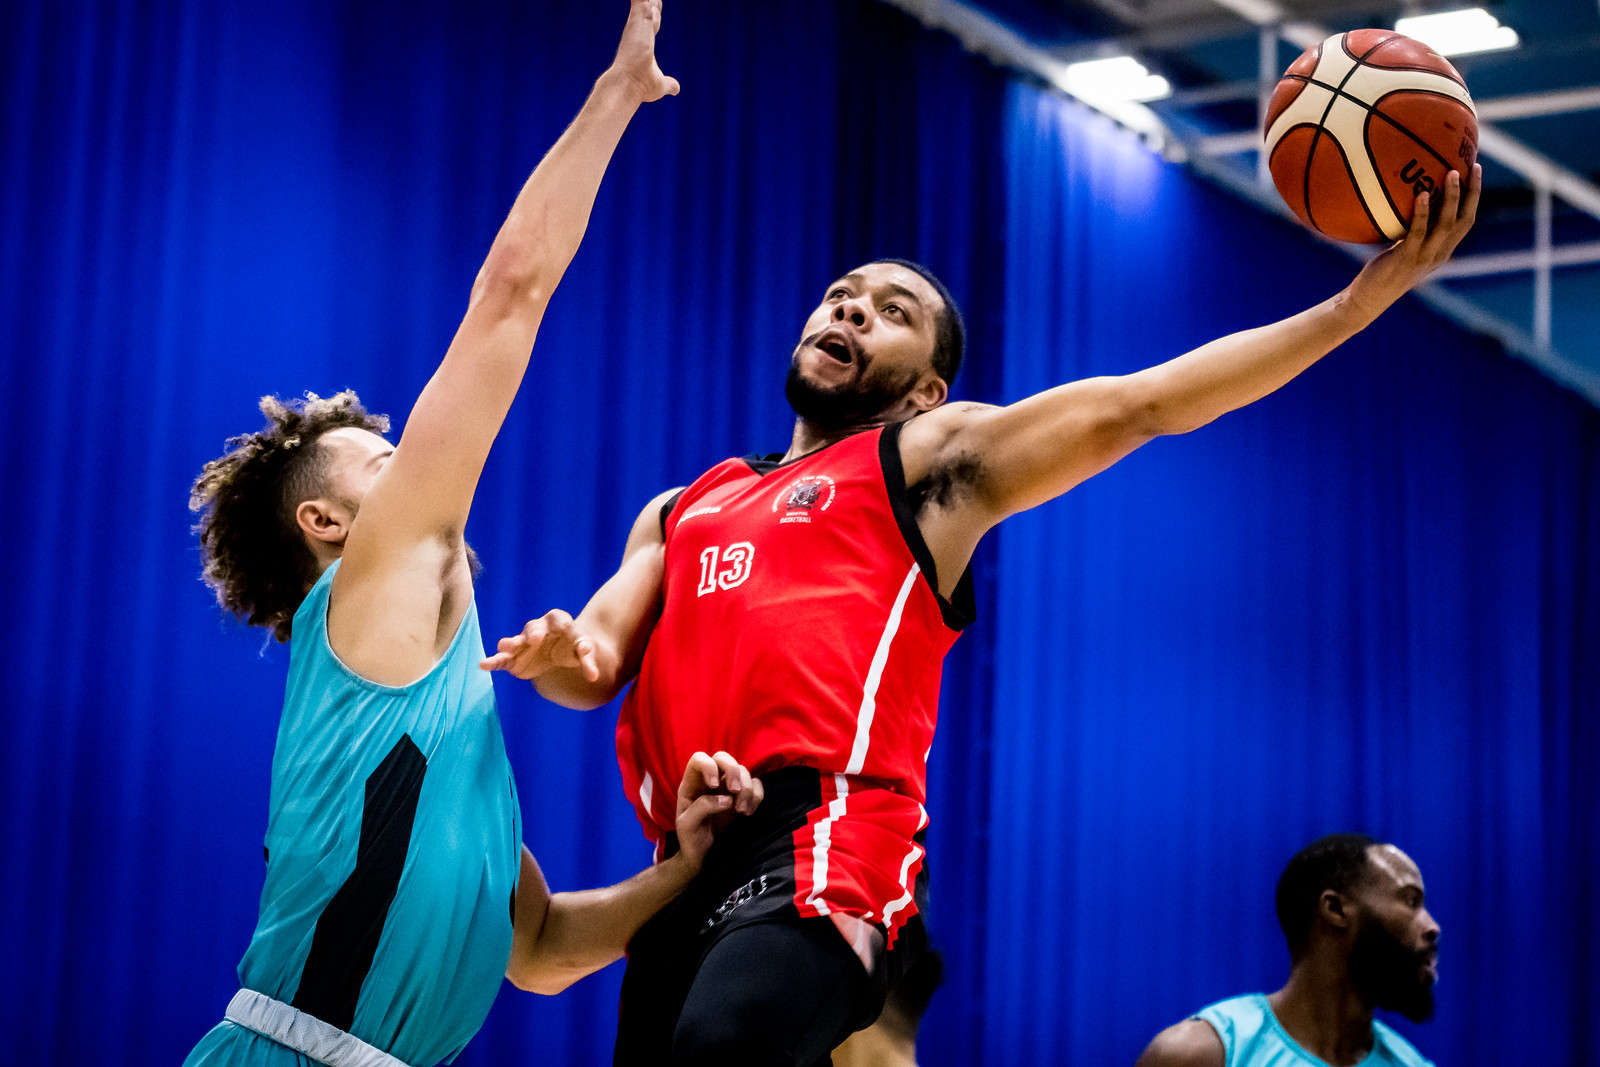 UWE Jets vs University of East London - 06/11/2019